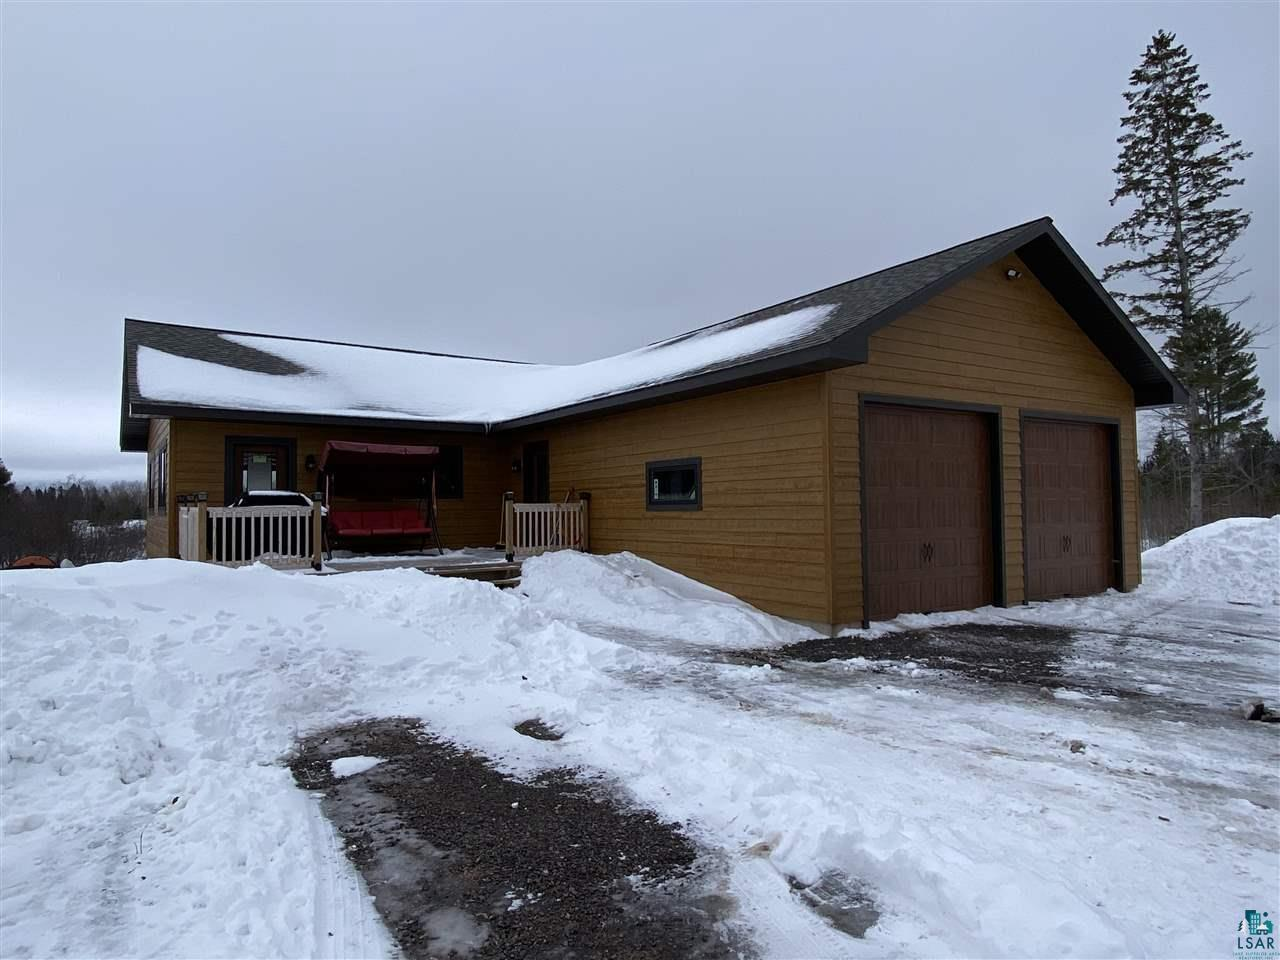 Newer 4 bedroom, 3 bath home (built in 2015).  2288 Square feet of all usable space.  Upper level starts with an open living/kitchen/dining area and has 2 bedrooms, 1 being a master with bath that has walk in shower and large walk in closet.  Also there is a convenient main floor laundry area.  Lower level has egress windows and is above grade for a full walk out to the back yard from the family room.  On this level there are 2 bedrooms, one currently being used as an office, and another full bath.  The land features 40 wooded acres in the front and opens up to 40, more open acres in the back, with some beautiful views and great hunting or hiking.  Trails have been mowed throughout the property and a foot/ATV bridge over the creek makes it all very accessible. ATV and snowmobile trail access for year round recreational enjoyment.  Work from Home?  This home has Fiber Optic Internet!  It does not get any better than this!